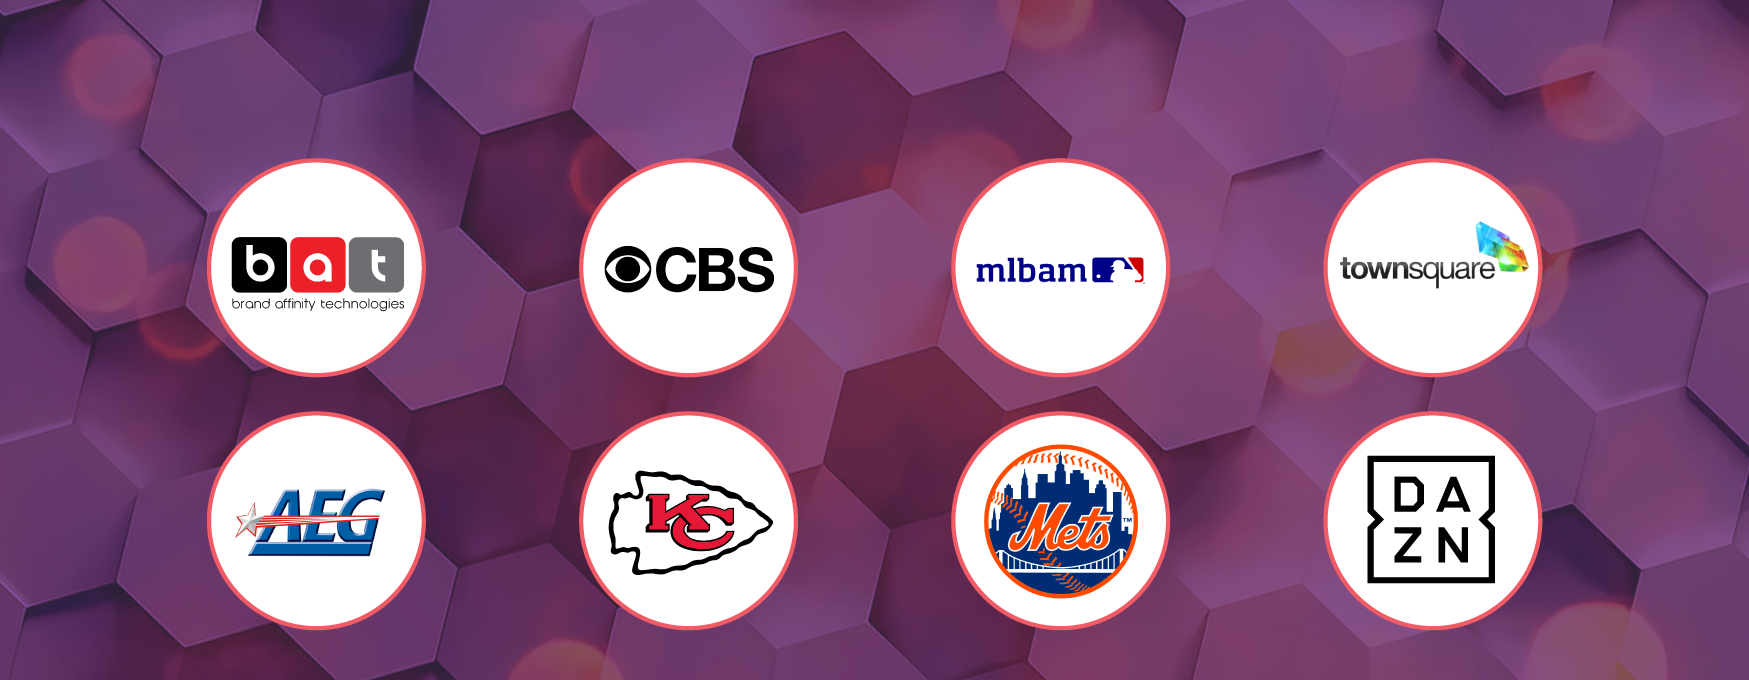 TOP MEDIA PLACEMENTS  (Partial List)